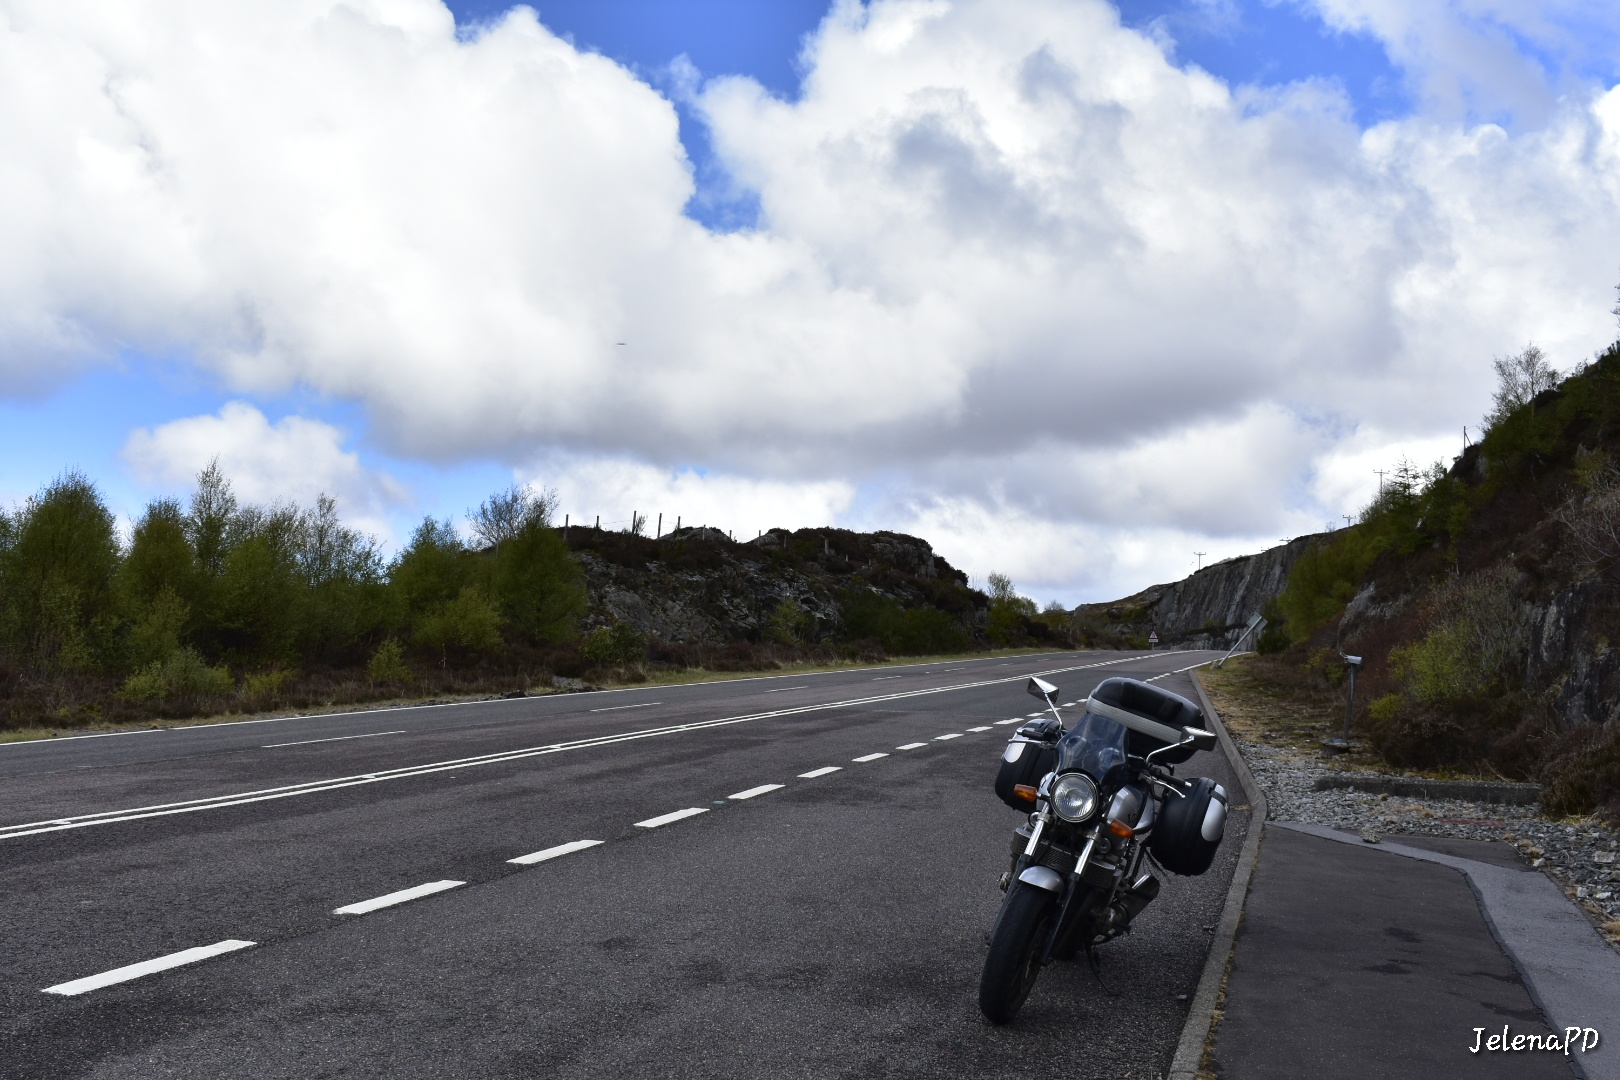 Our Yamaha XJR 1300 parked by the side of the A82, admiring the view.